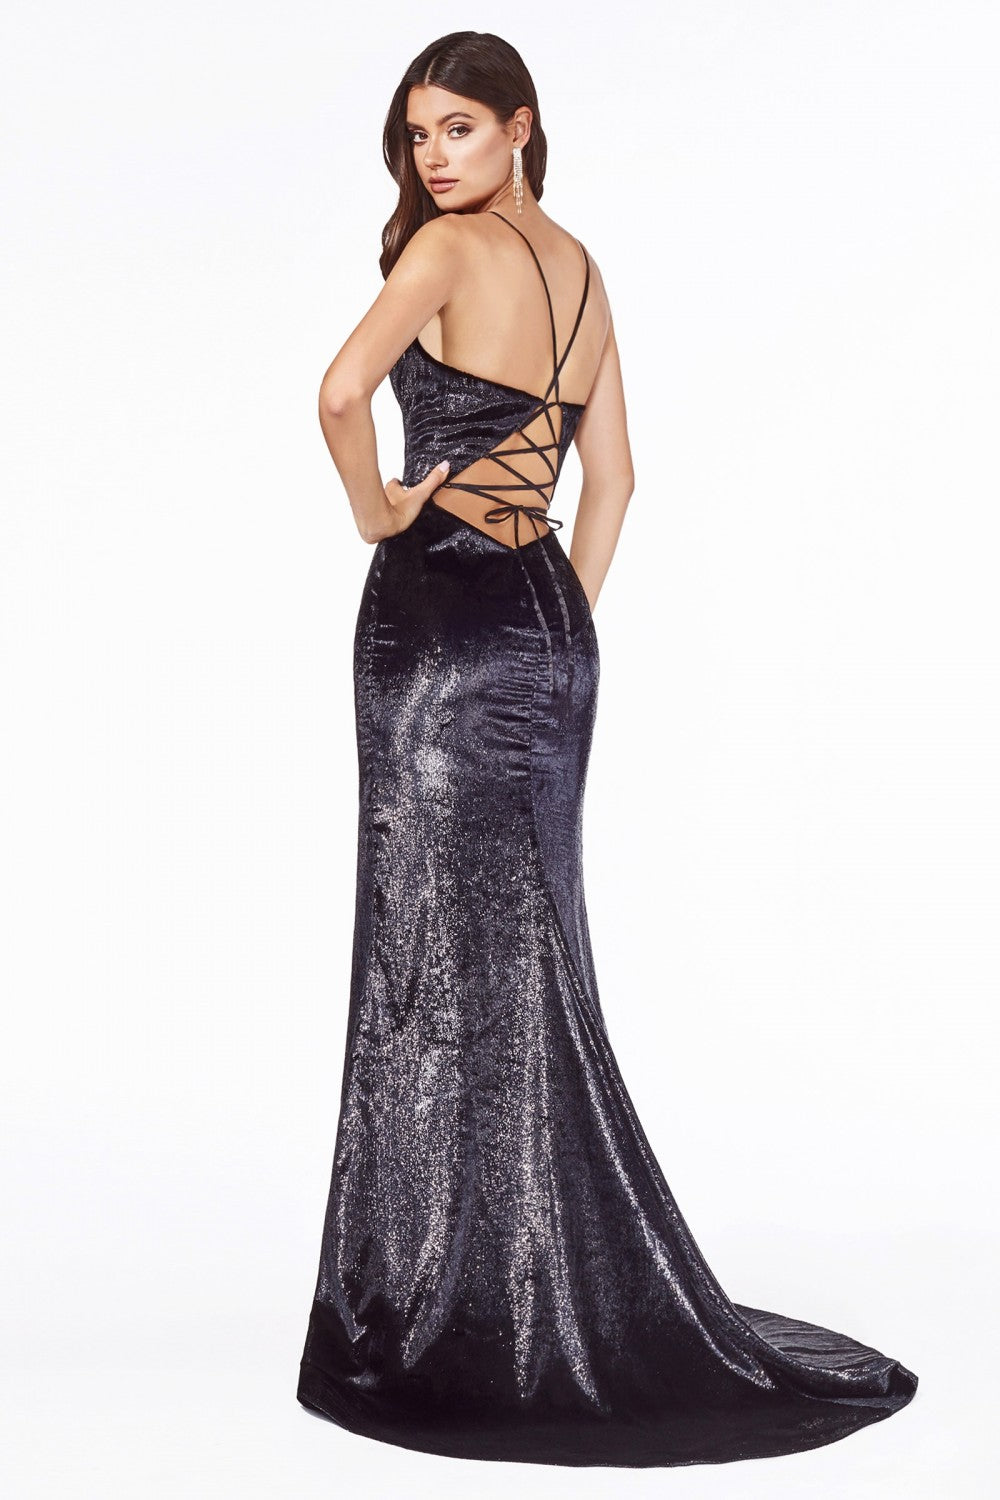 CD B60122 - Black Metallic Faux Fur Fit & Flare Gown with Open Lace Up Back